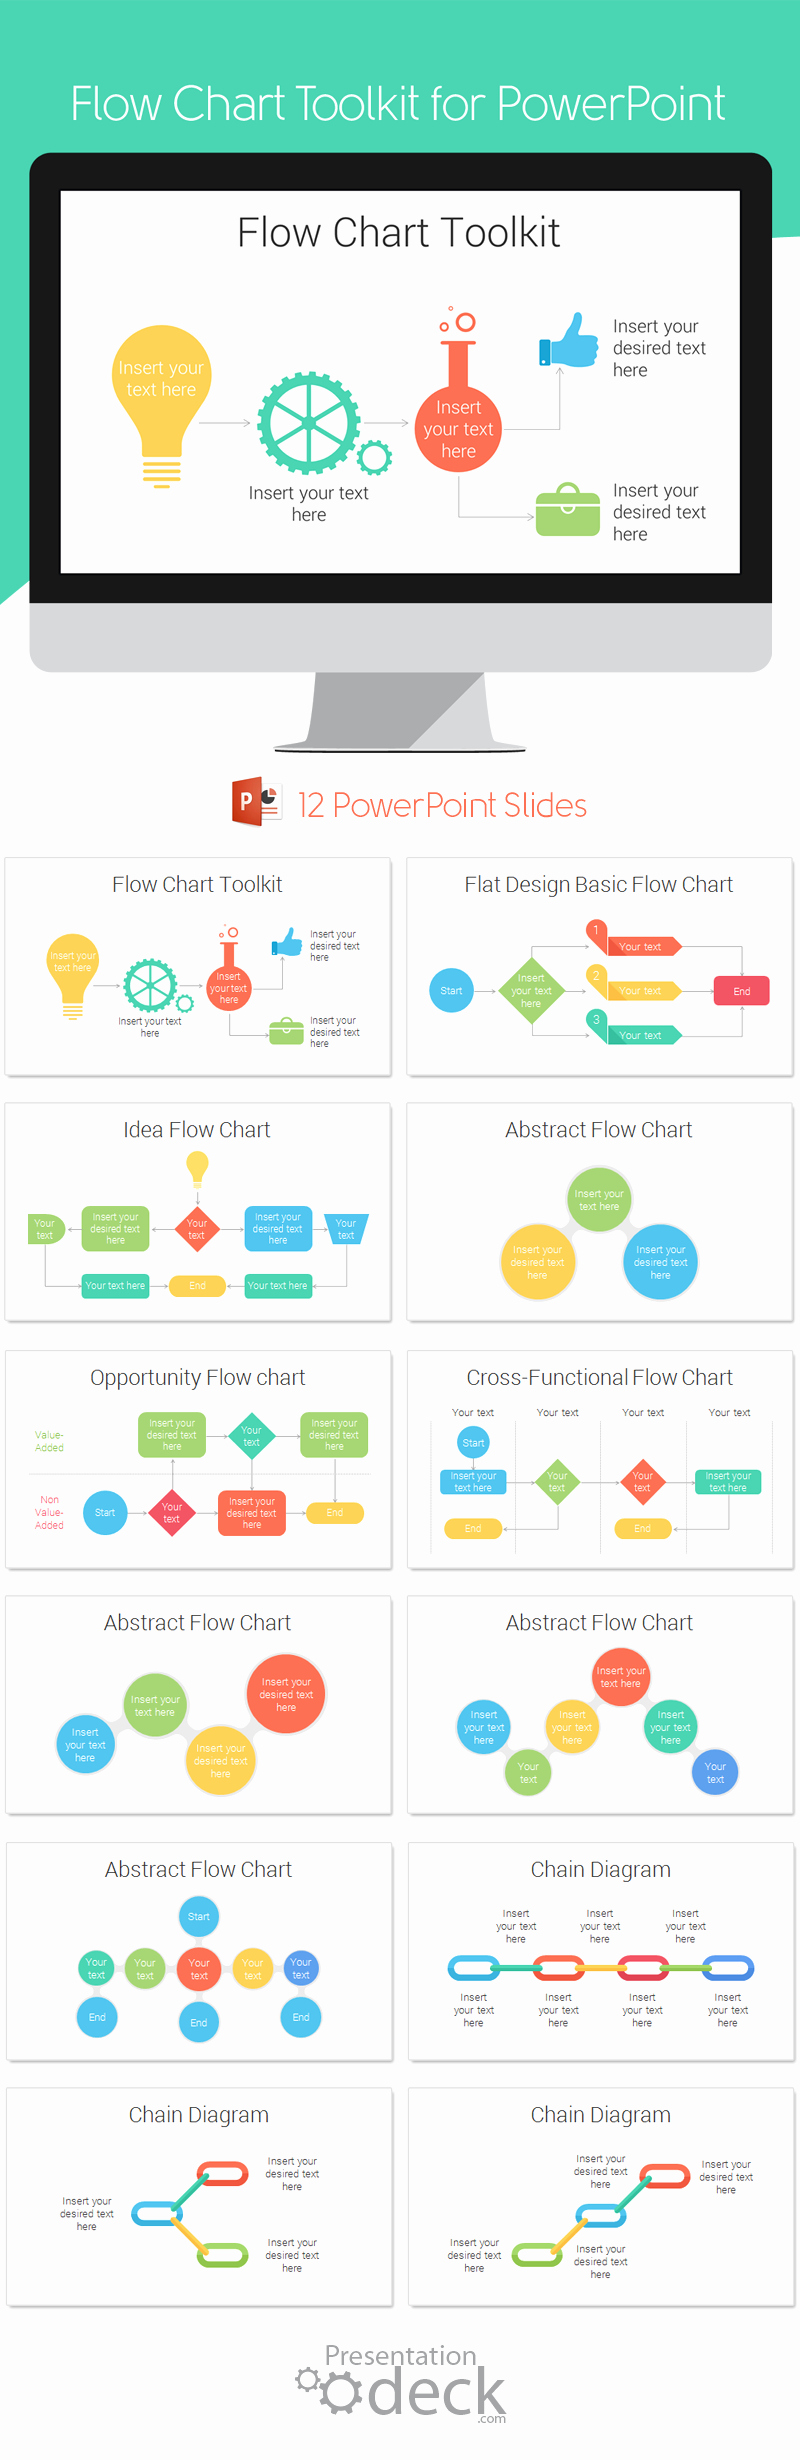 Powerpoint Process Flow Template Elegant Flow Chart toolkit for Powerpoint